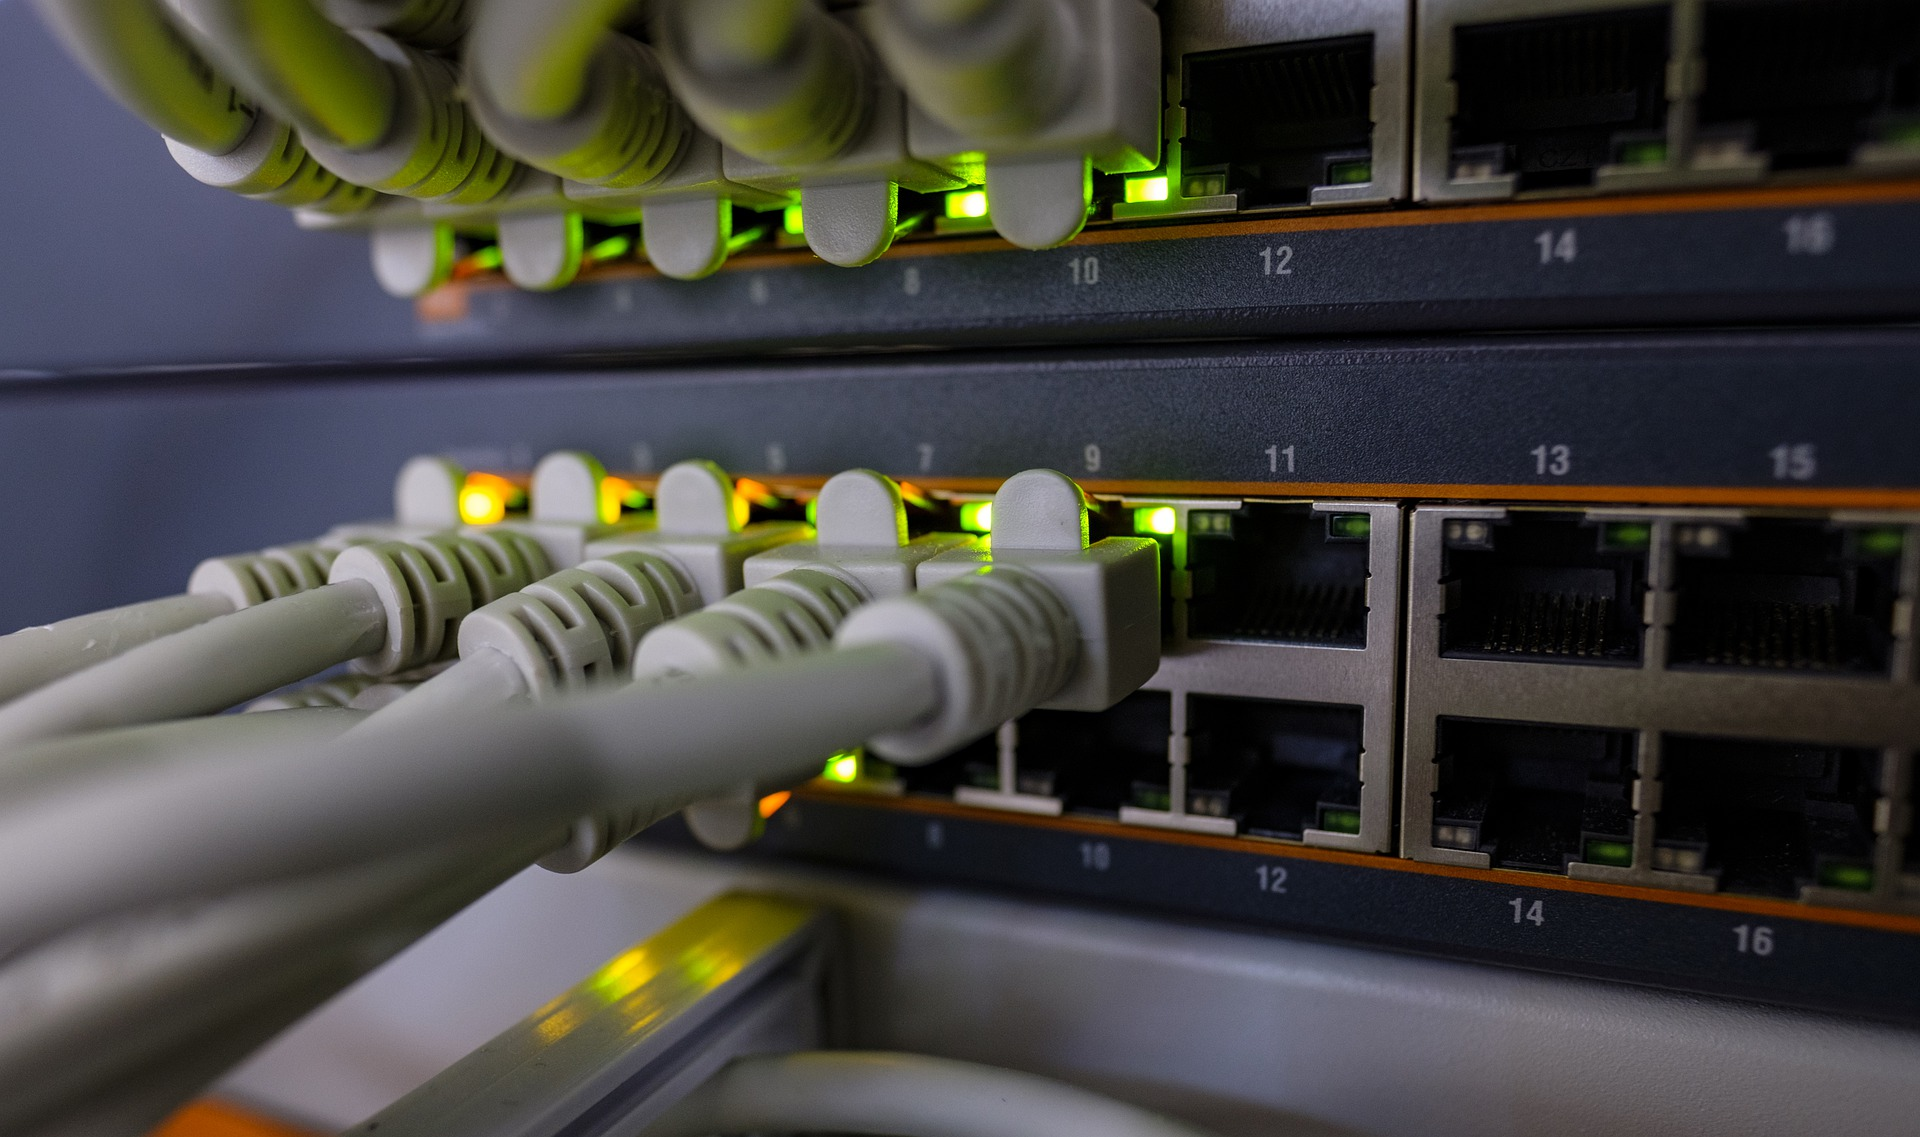 Ethernet cords pulled into Network